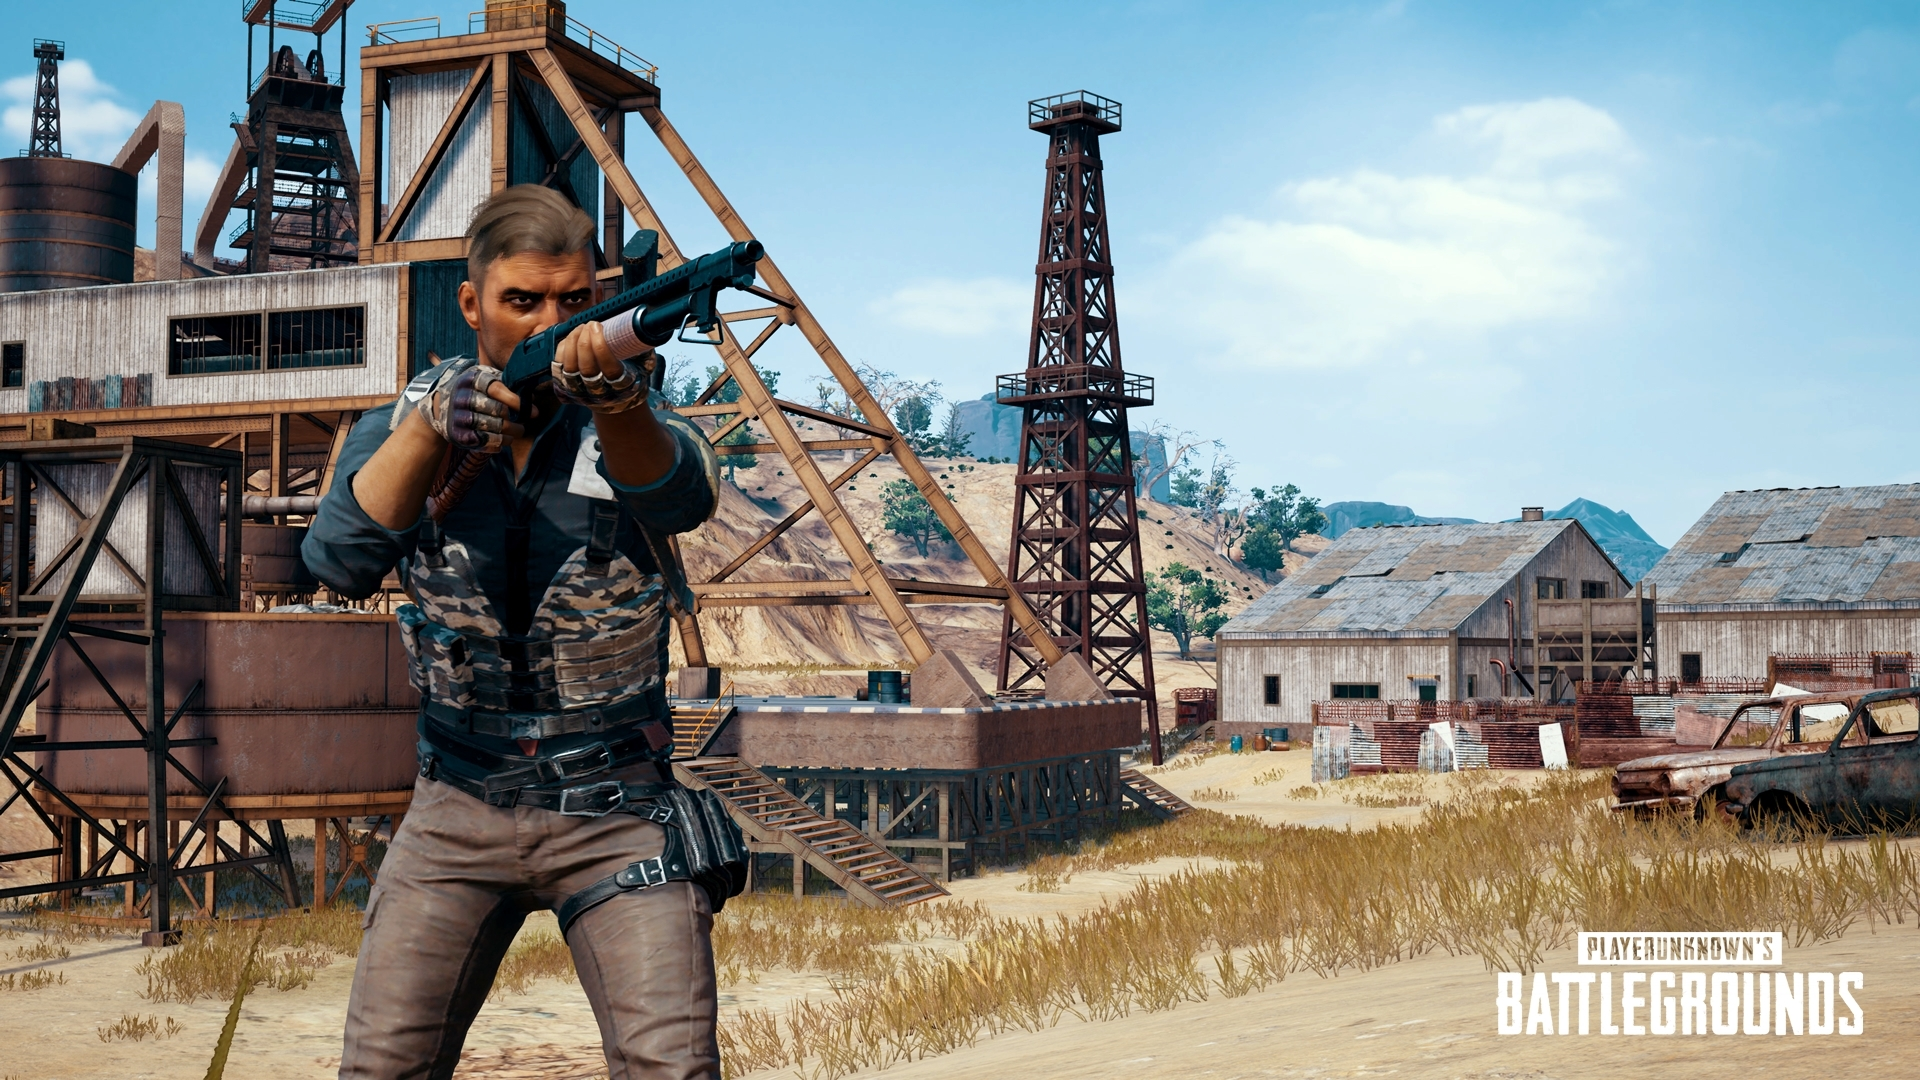 PlayerUnknown's Battlegrounds Xbox One Gets Second Patch, Includes Further Optimization